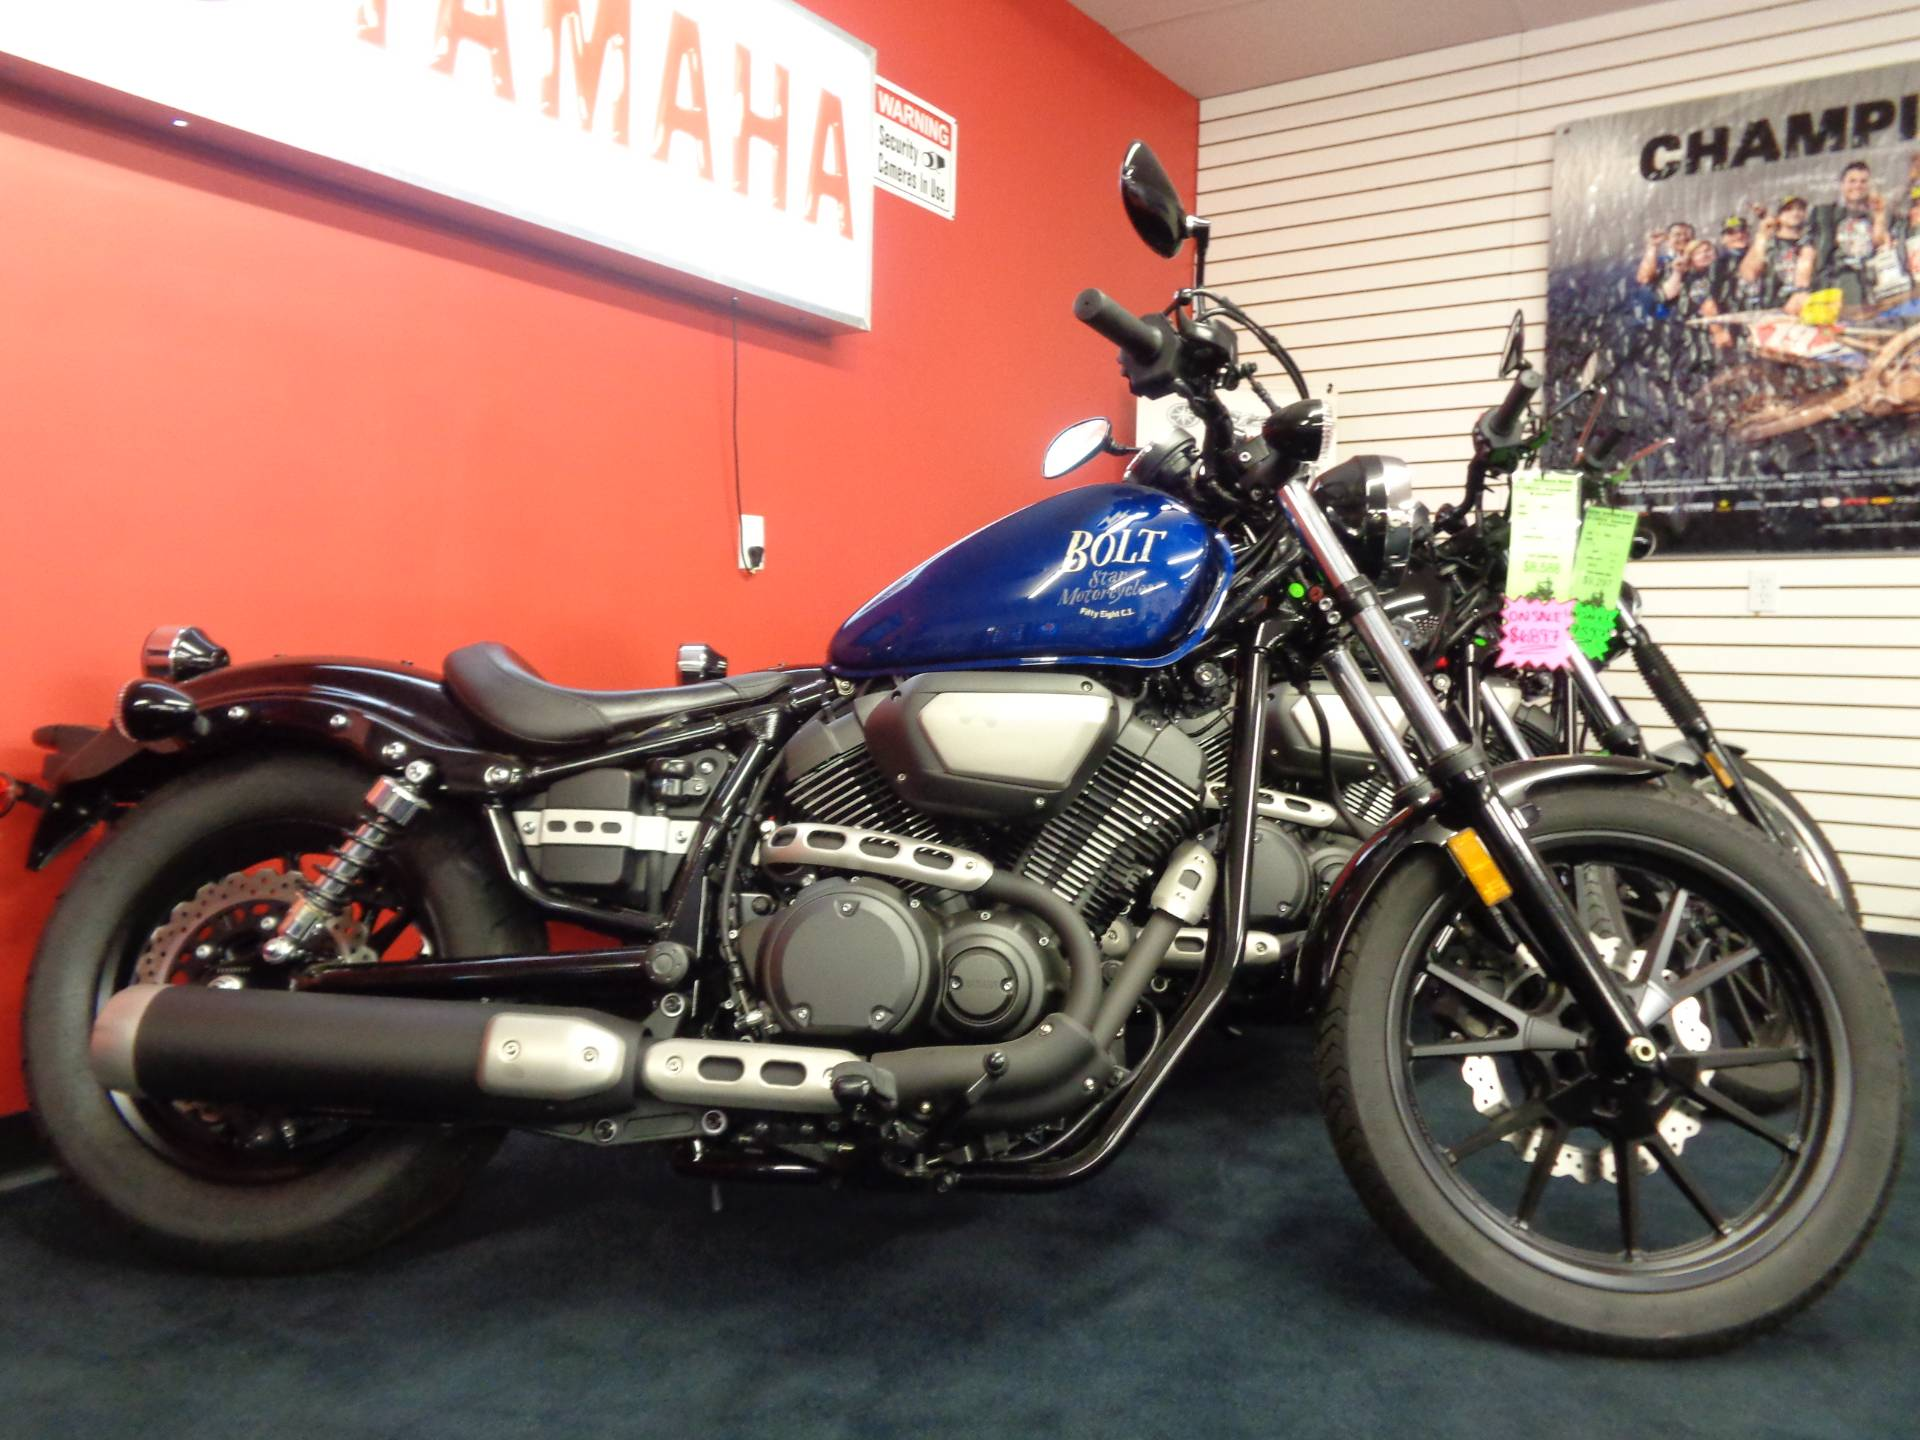 2016 Yamaha Bolt for sale 6908